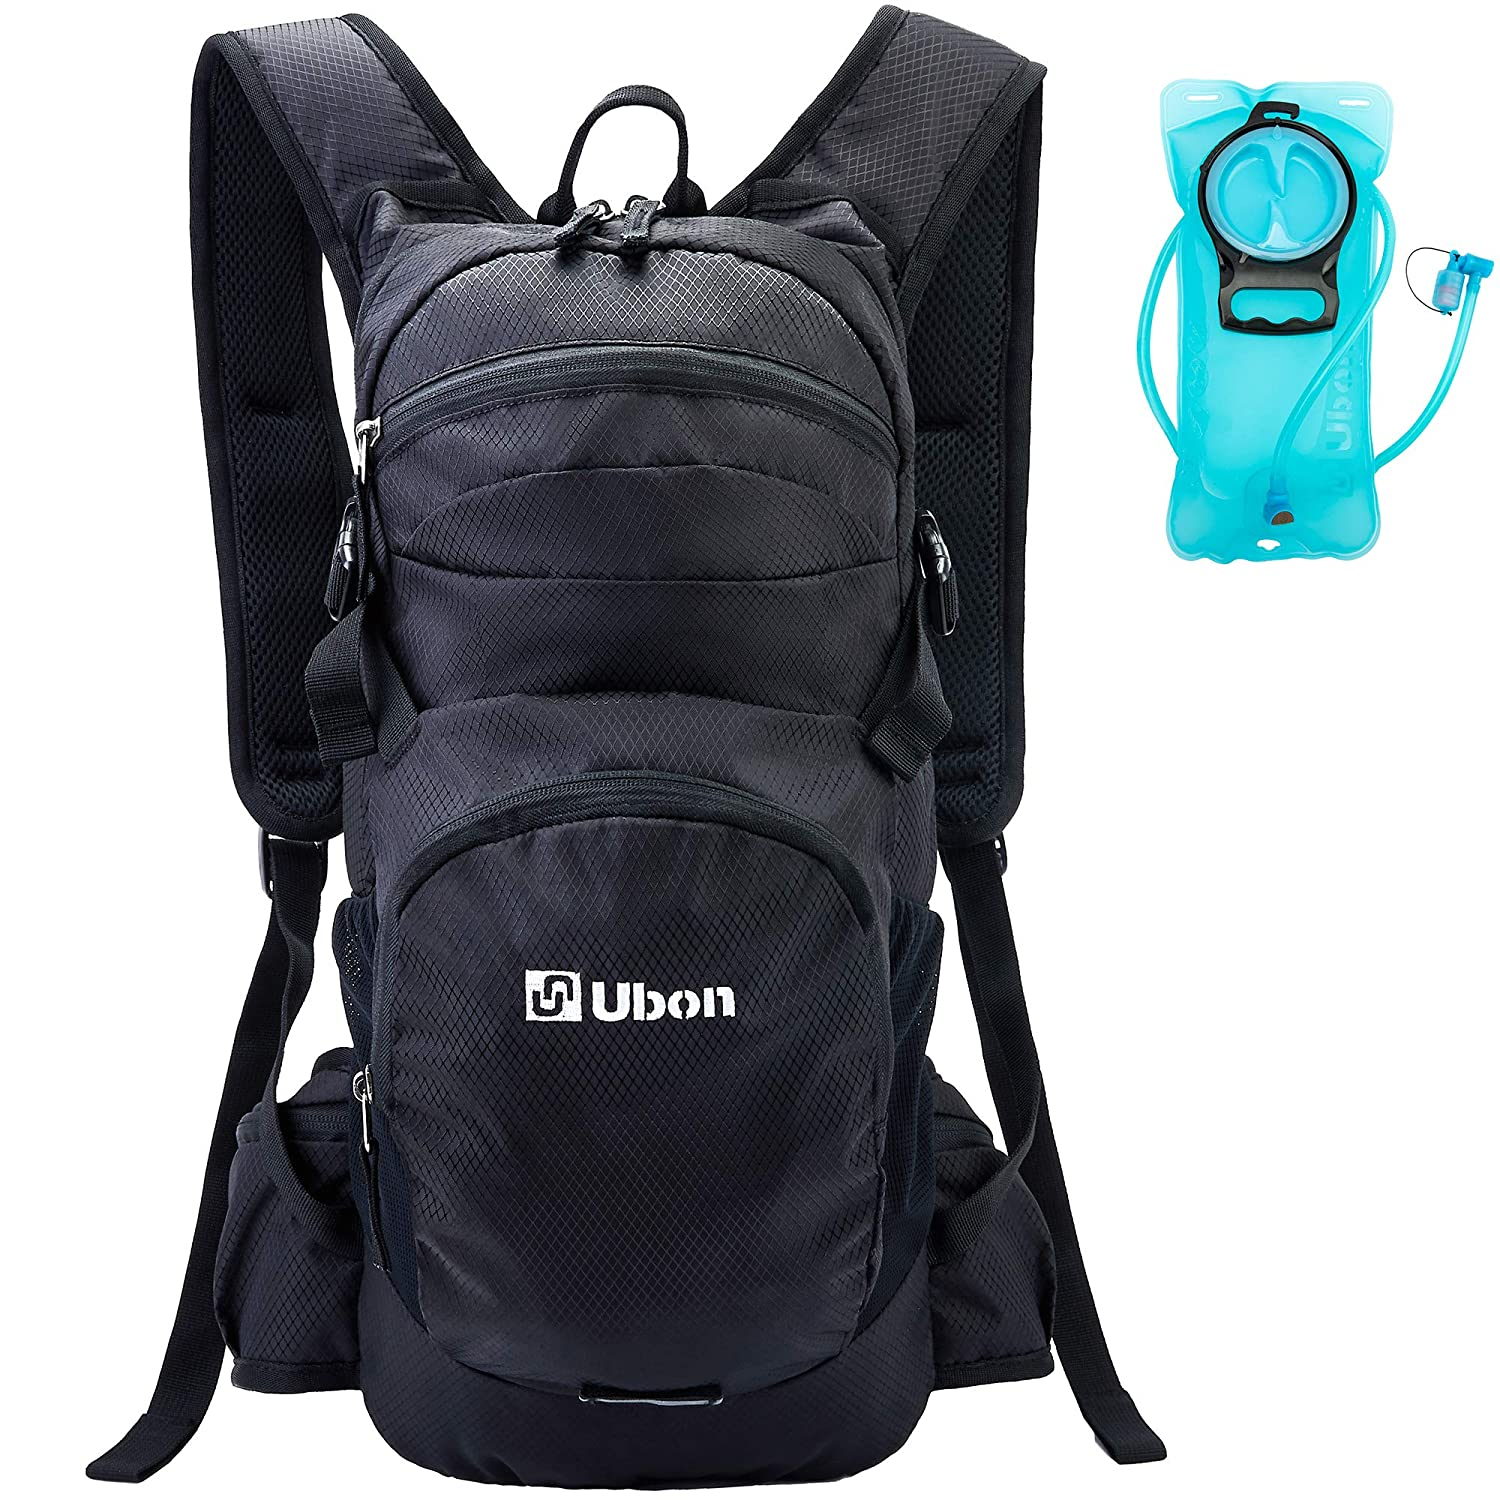 Ubon Lightweight Hiking Hydration Backpack with 2L Water Bladder